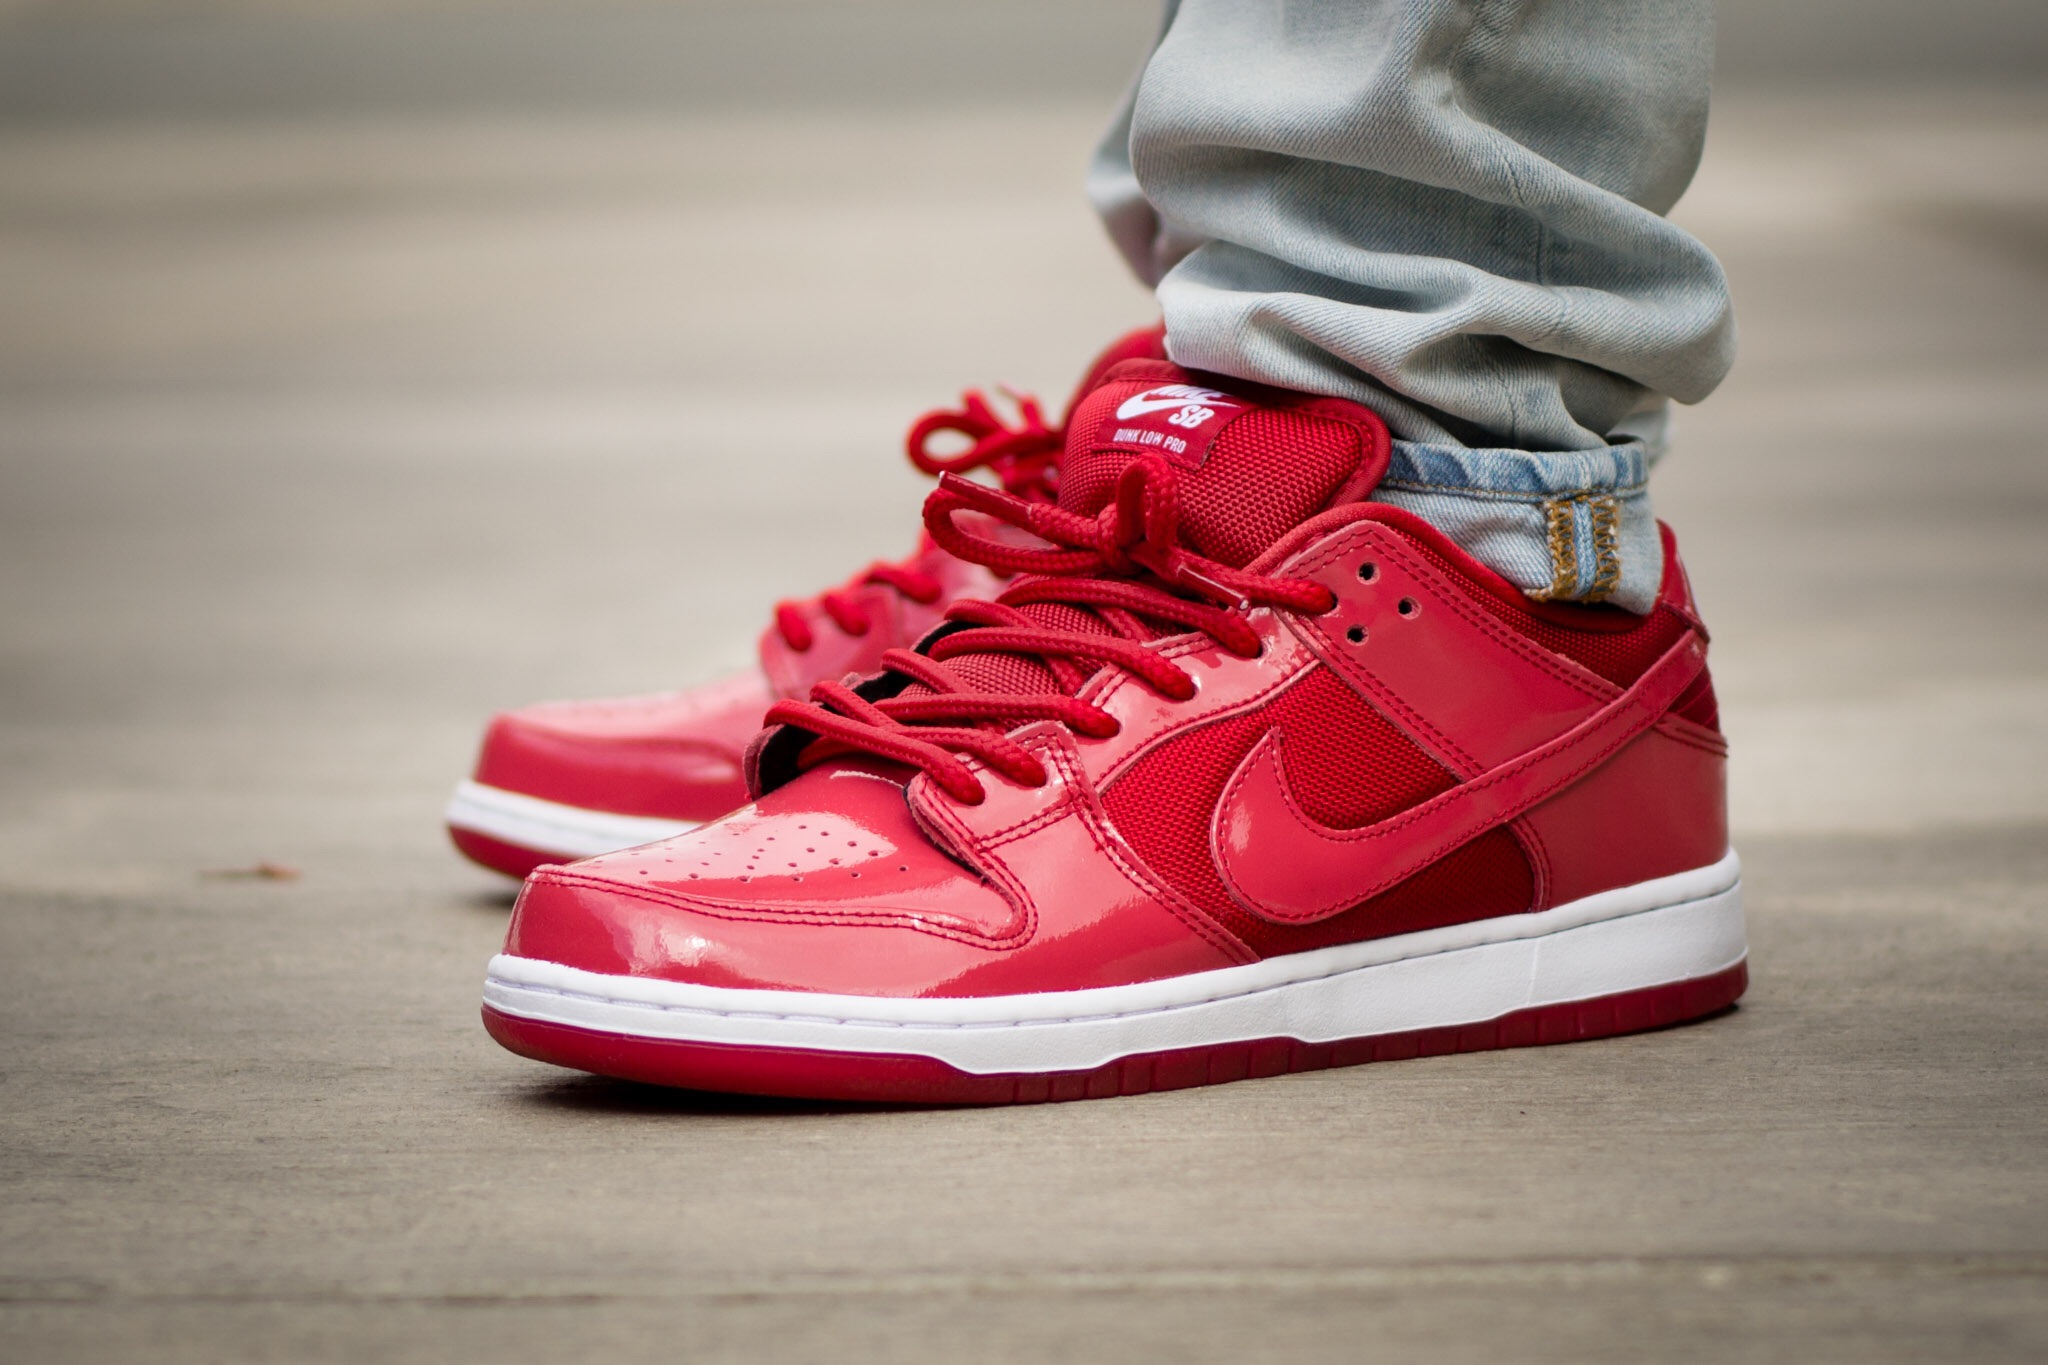 separation shoes 82b98 b44a1 Nike Dunk SB Low Ruby Red Slipper - WDYWT